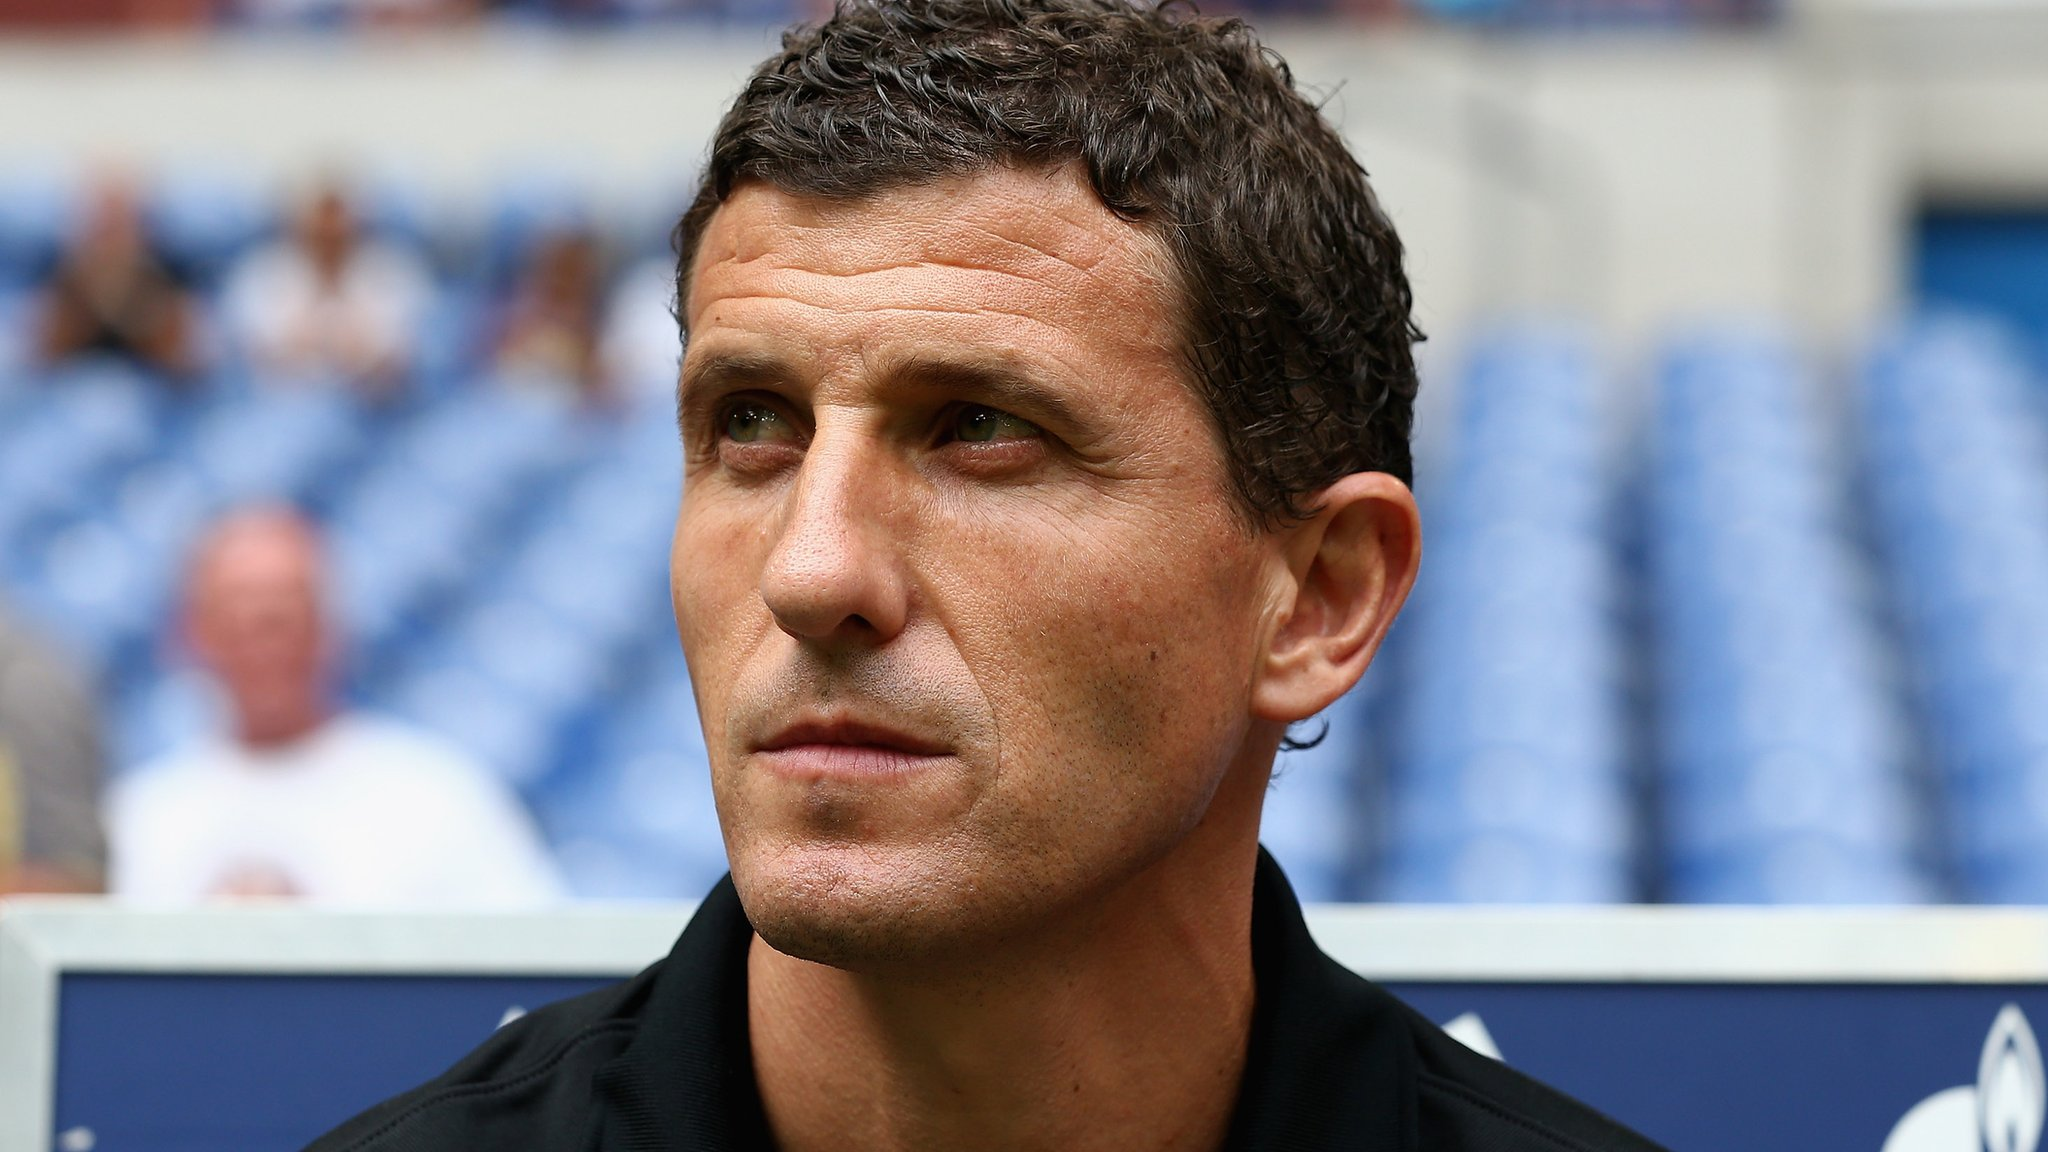 'Effective, rather than thrilling' - what can Watford expect from Gracia?